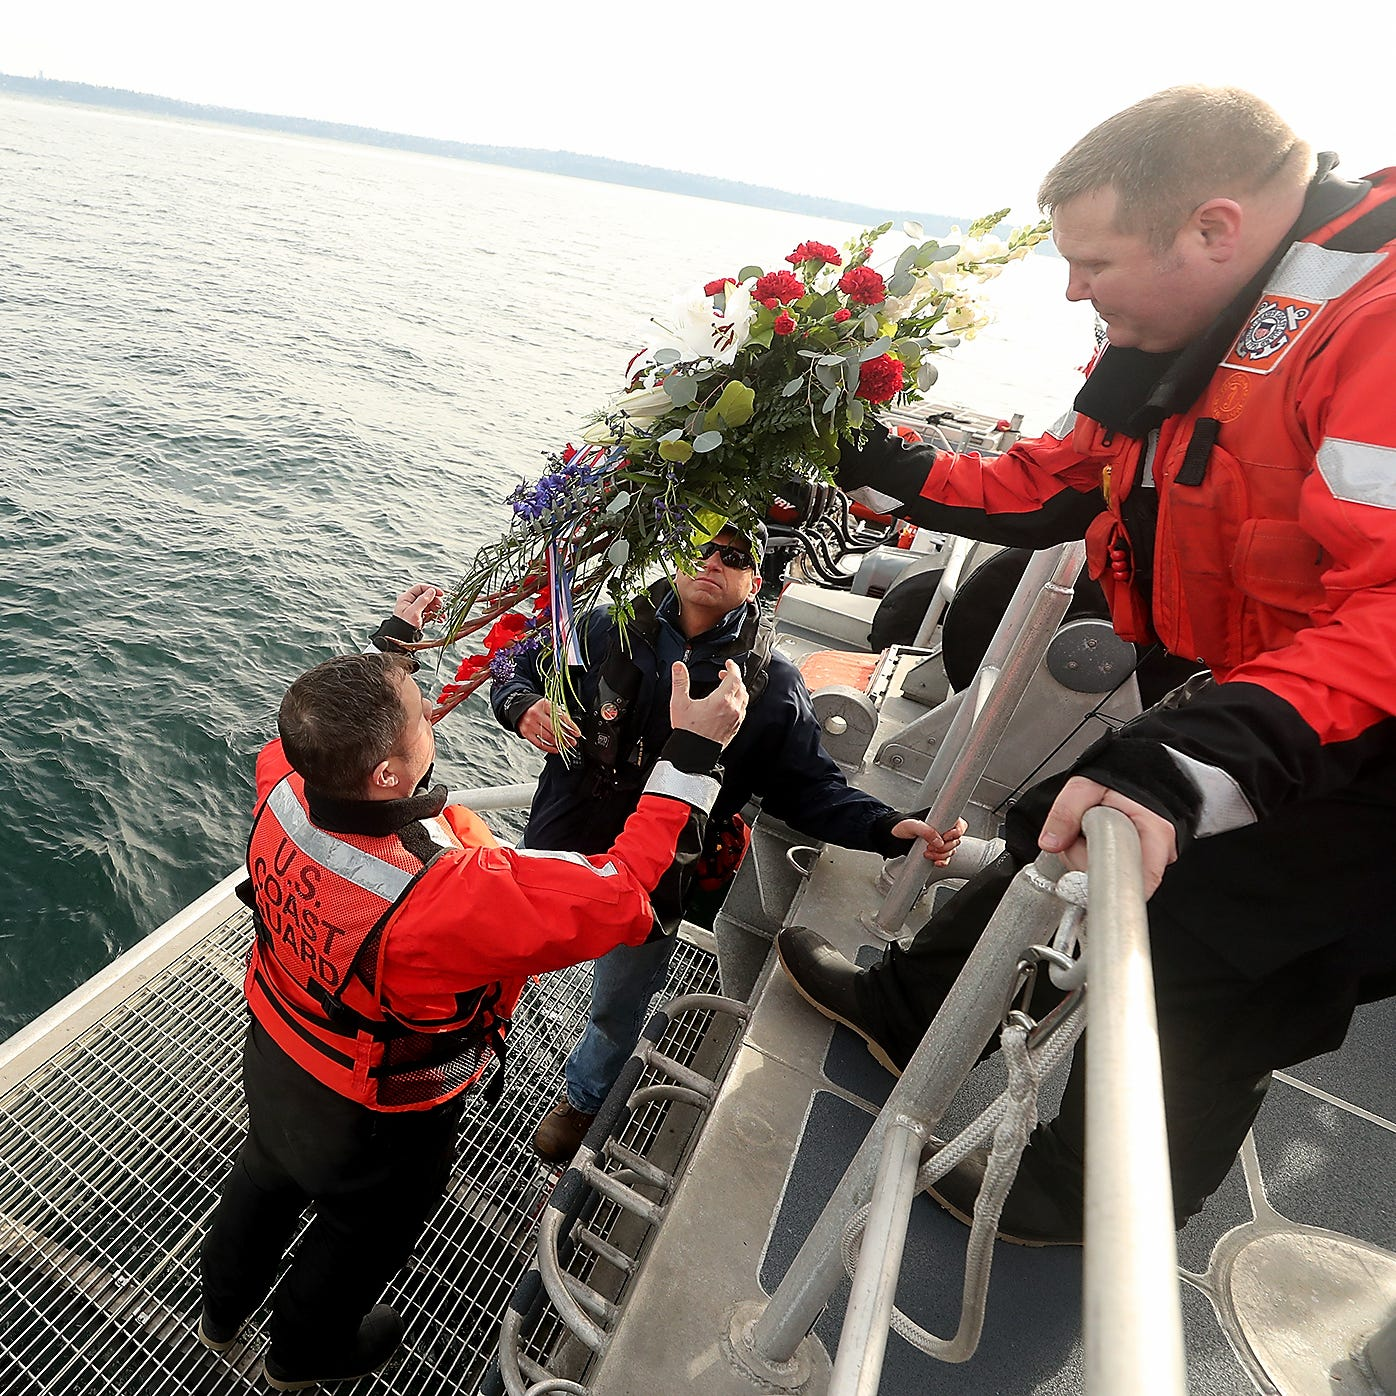 Coast Guard honors fallen shipmate's sacrifice for safety